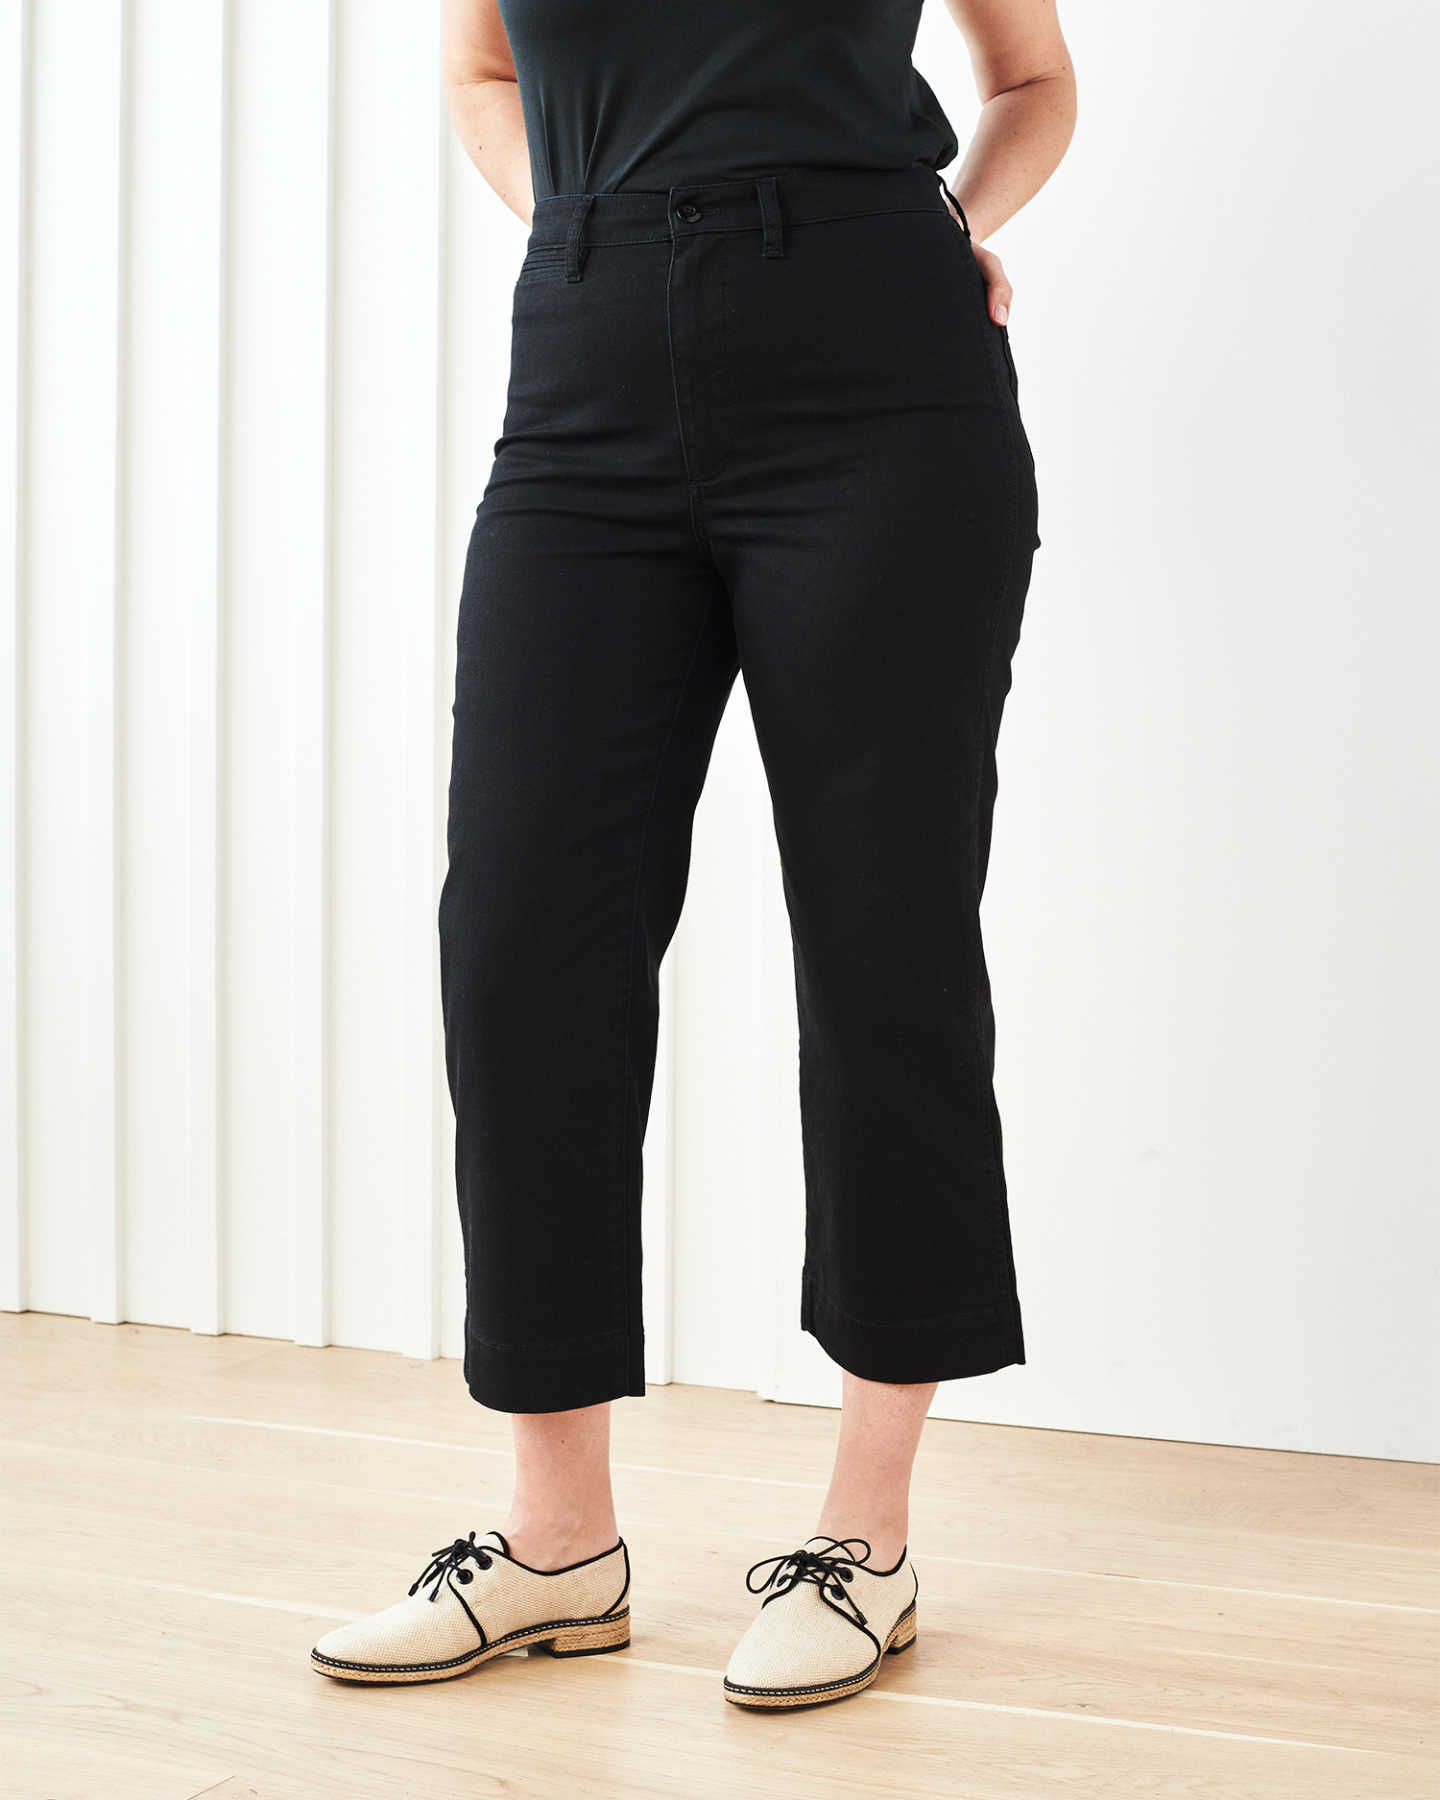 Stretch Cotton Twill Wide-Leg Crop Pant - Black - 0 - Thumbnail